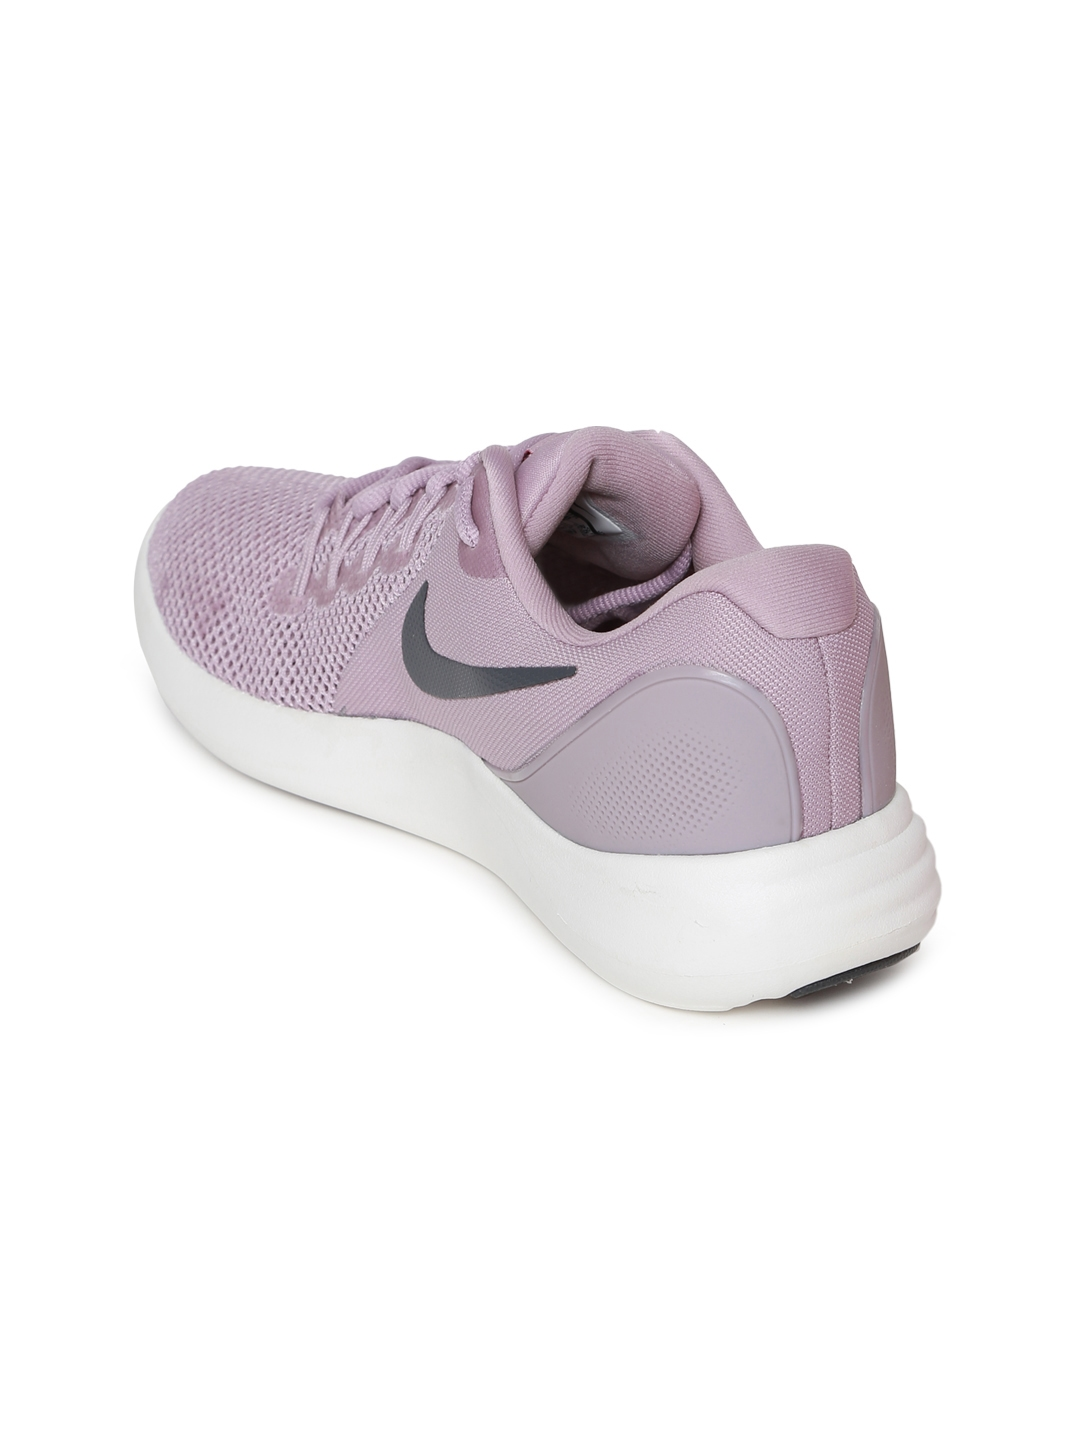 450ee423c7a6 Buy Nike Women Purple LUNAR APPARENT Running Shoes - Sports Shoes ...